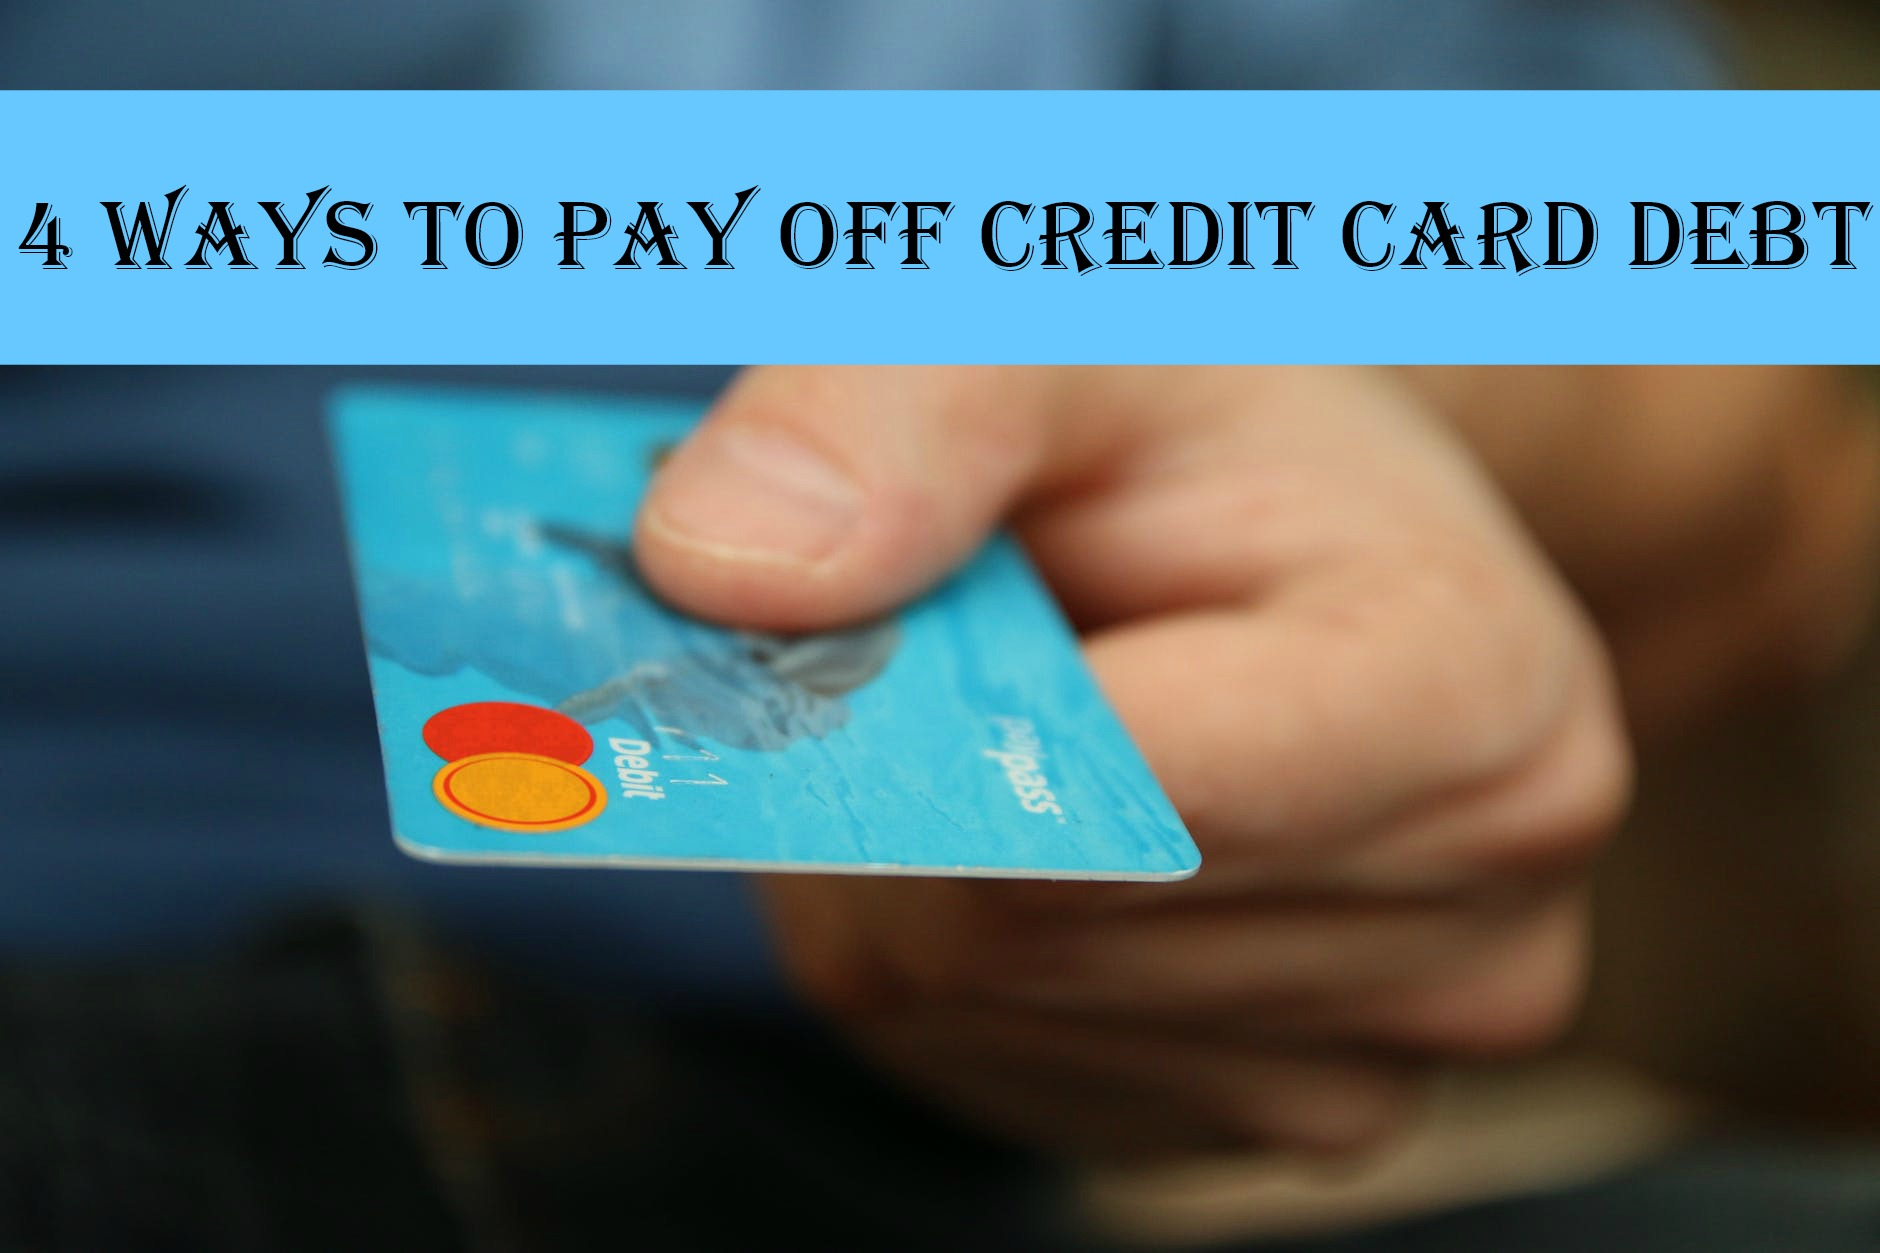 4 Ways to Pay Off Credit Card Debt